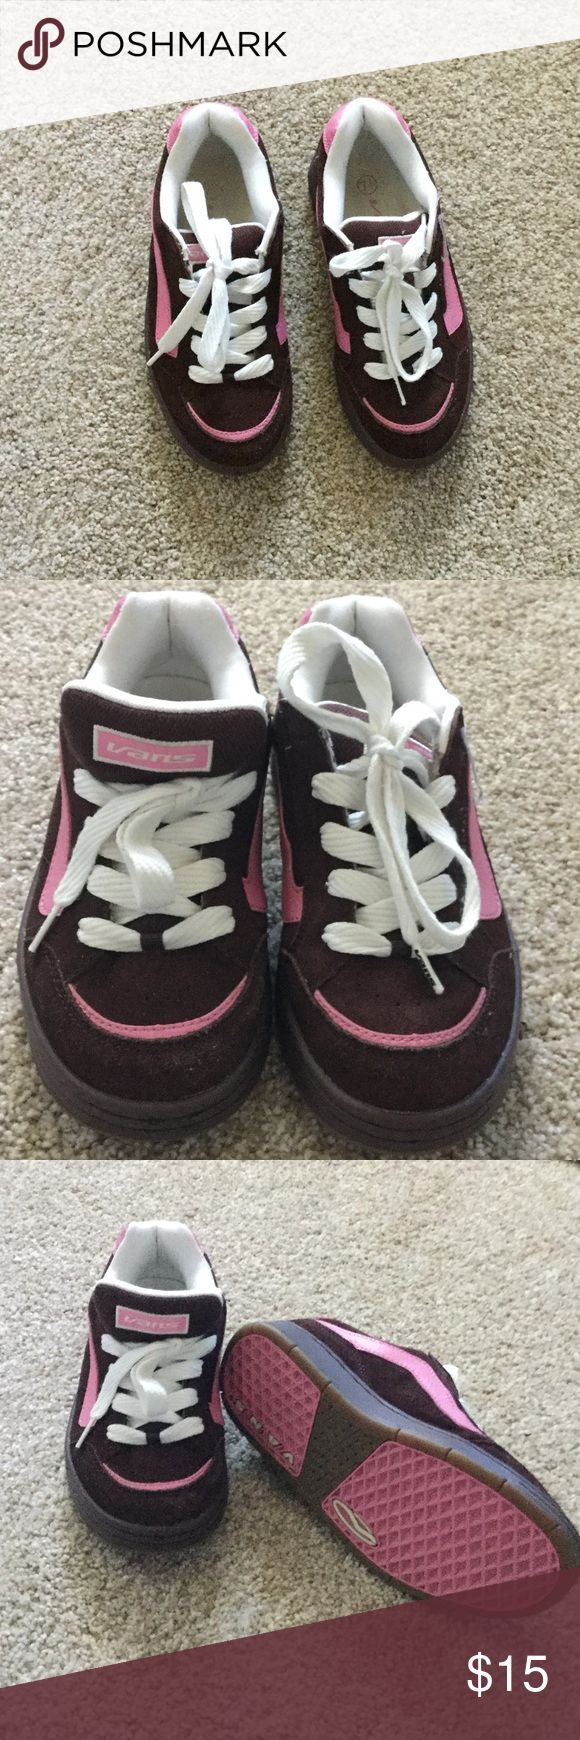 🎁 Black Friday Sale 🎁 Vans shoes Super cute pink and brown Vans, they are a 7 1/2 but fit more like a7. In perfect condition Vans Shoes Sneakers